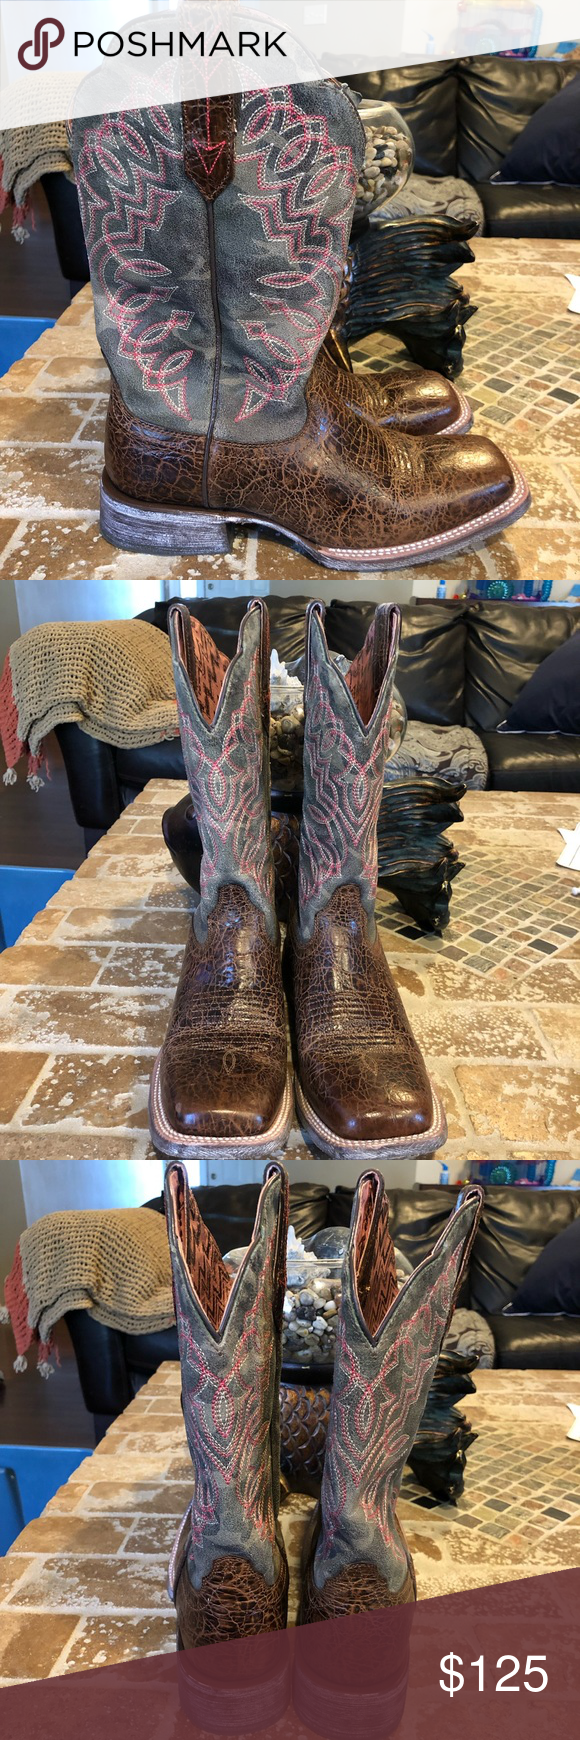 f0a0df8f0b5 Ariat NWOT size 8.5 M Never worn Out box Circuit Cisco Western Boot 4LR™  footbed for support and cushioning •Full-grain leather foot and upper  •Unique ...